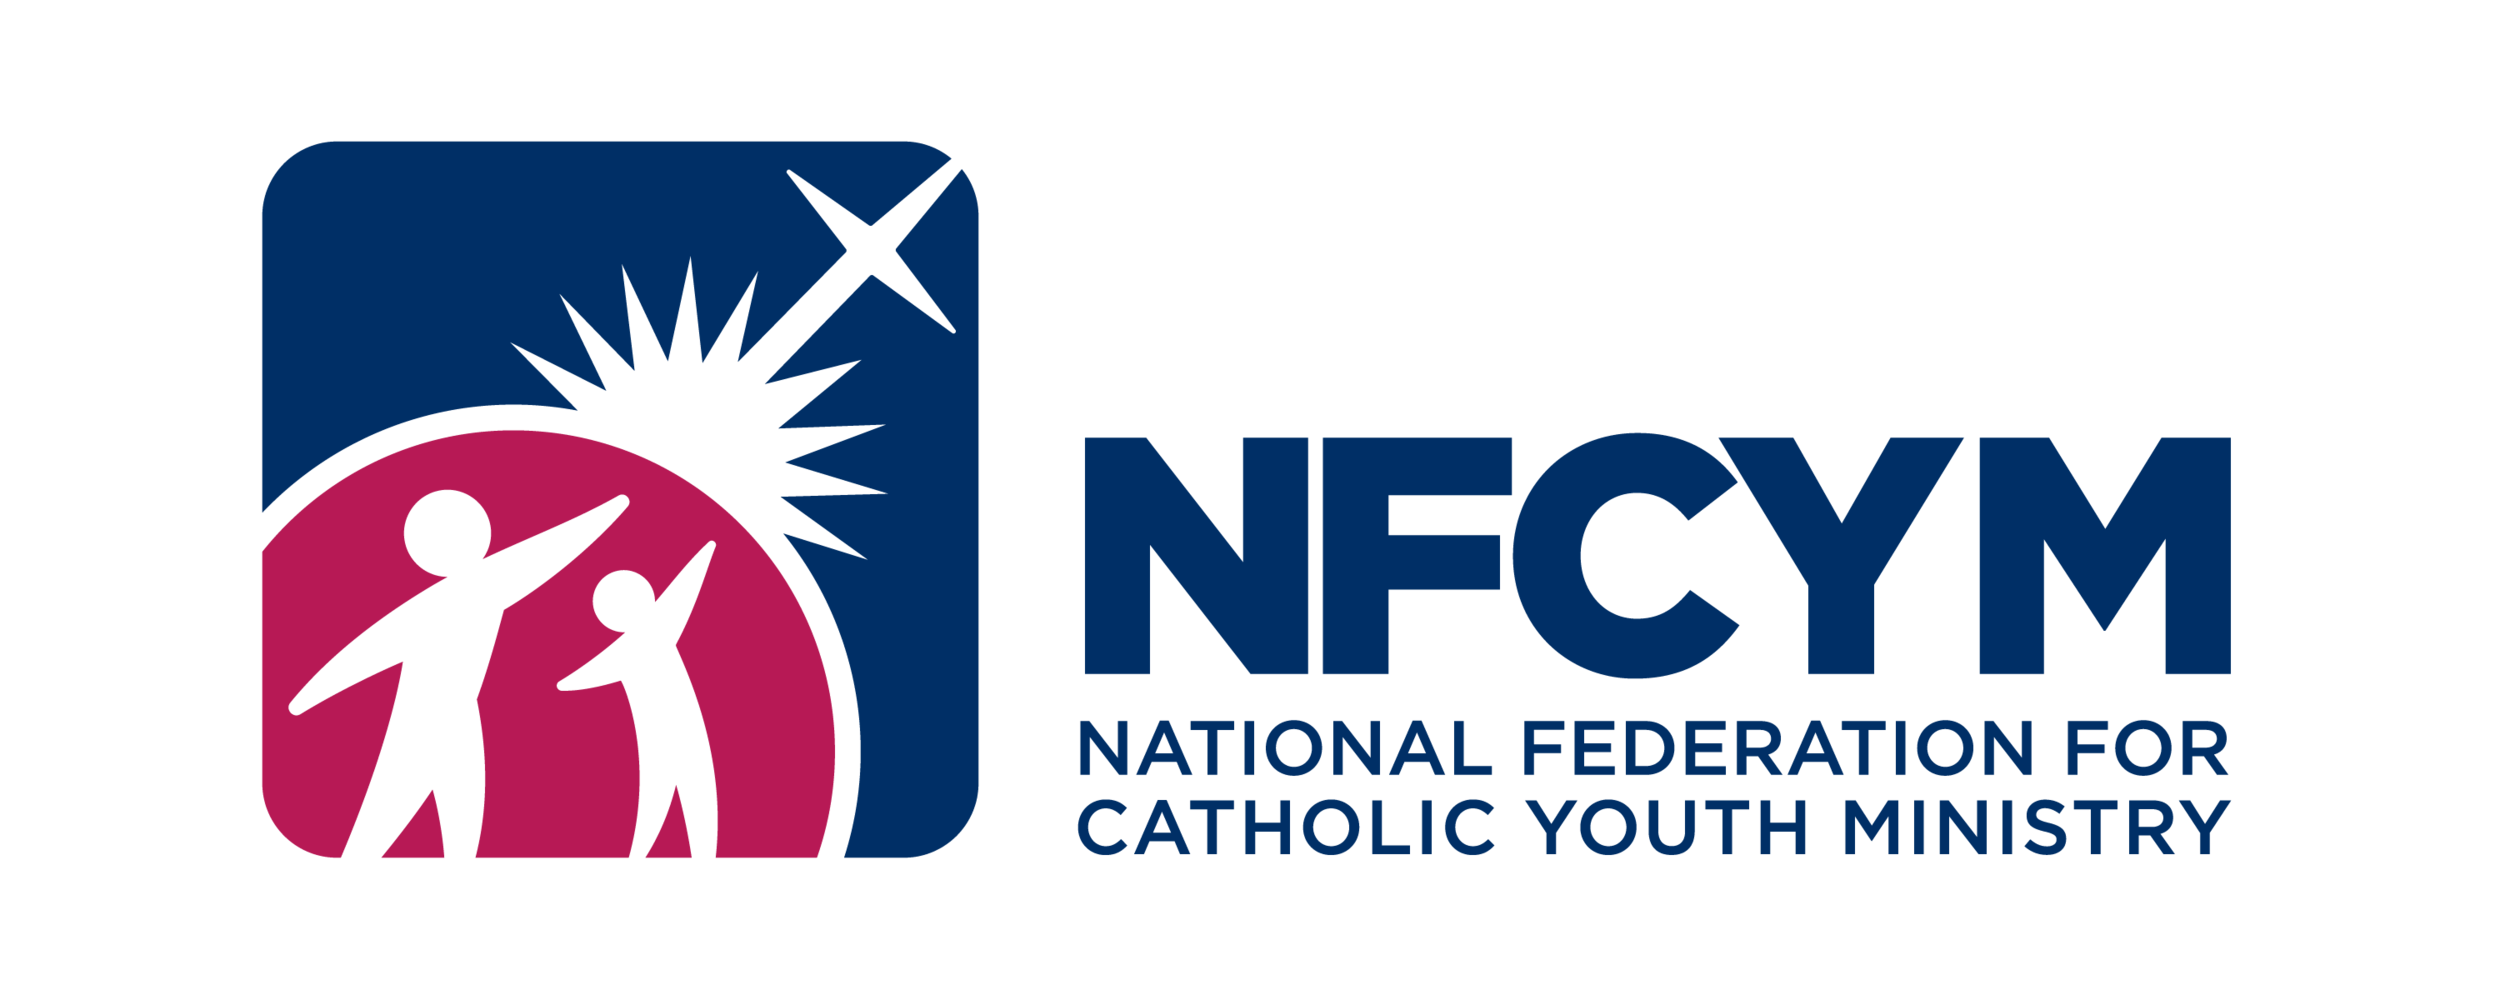 This event is produced and presented by the National Federation for Catholic Youth Ministry